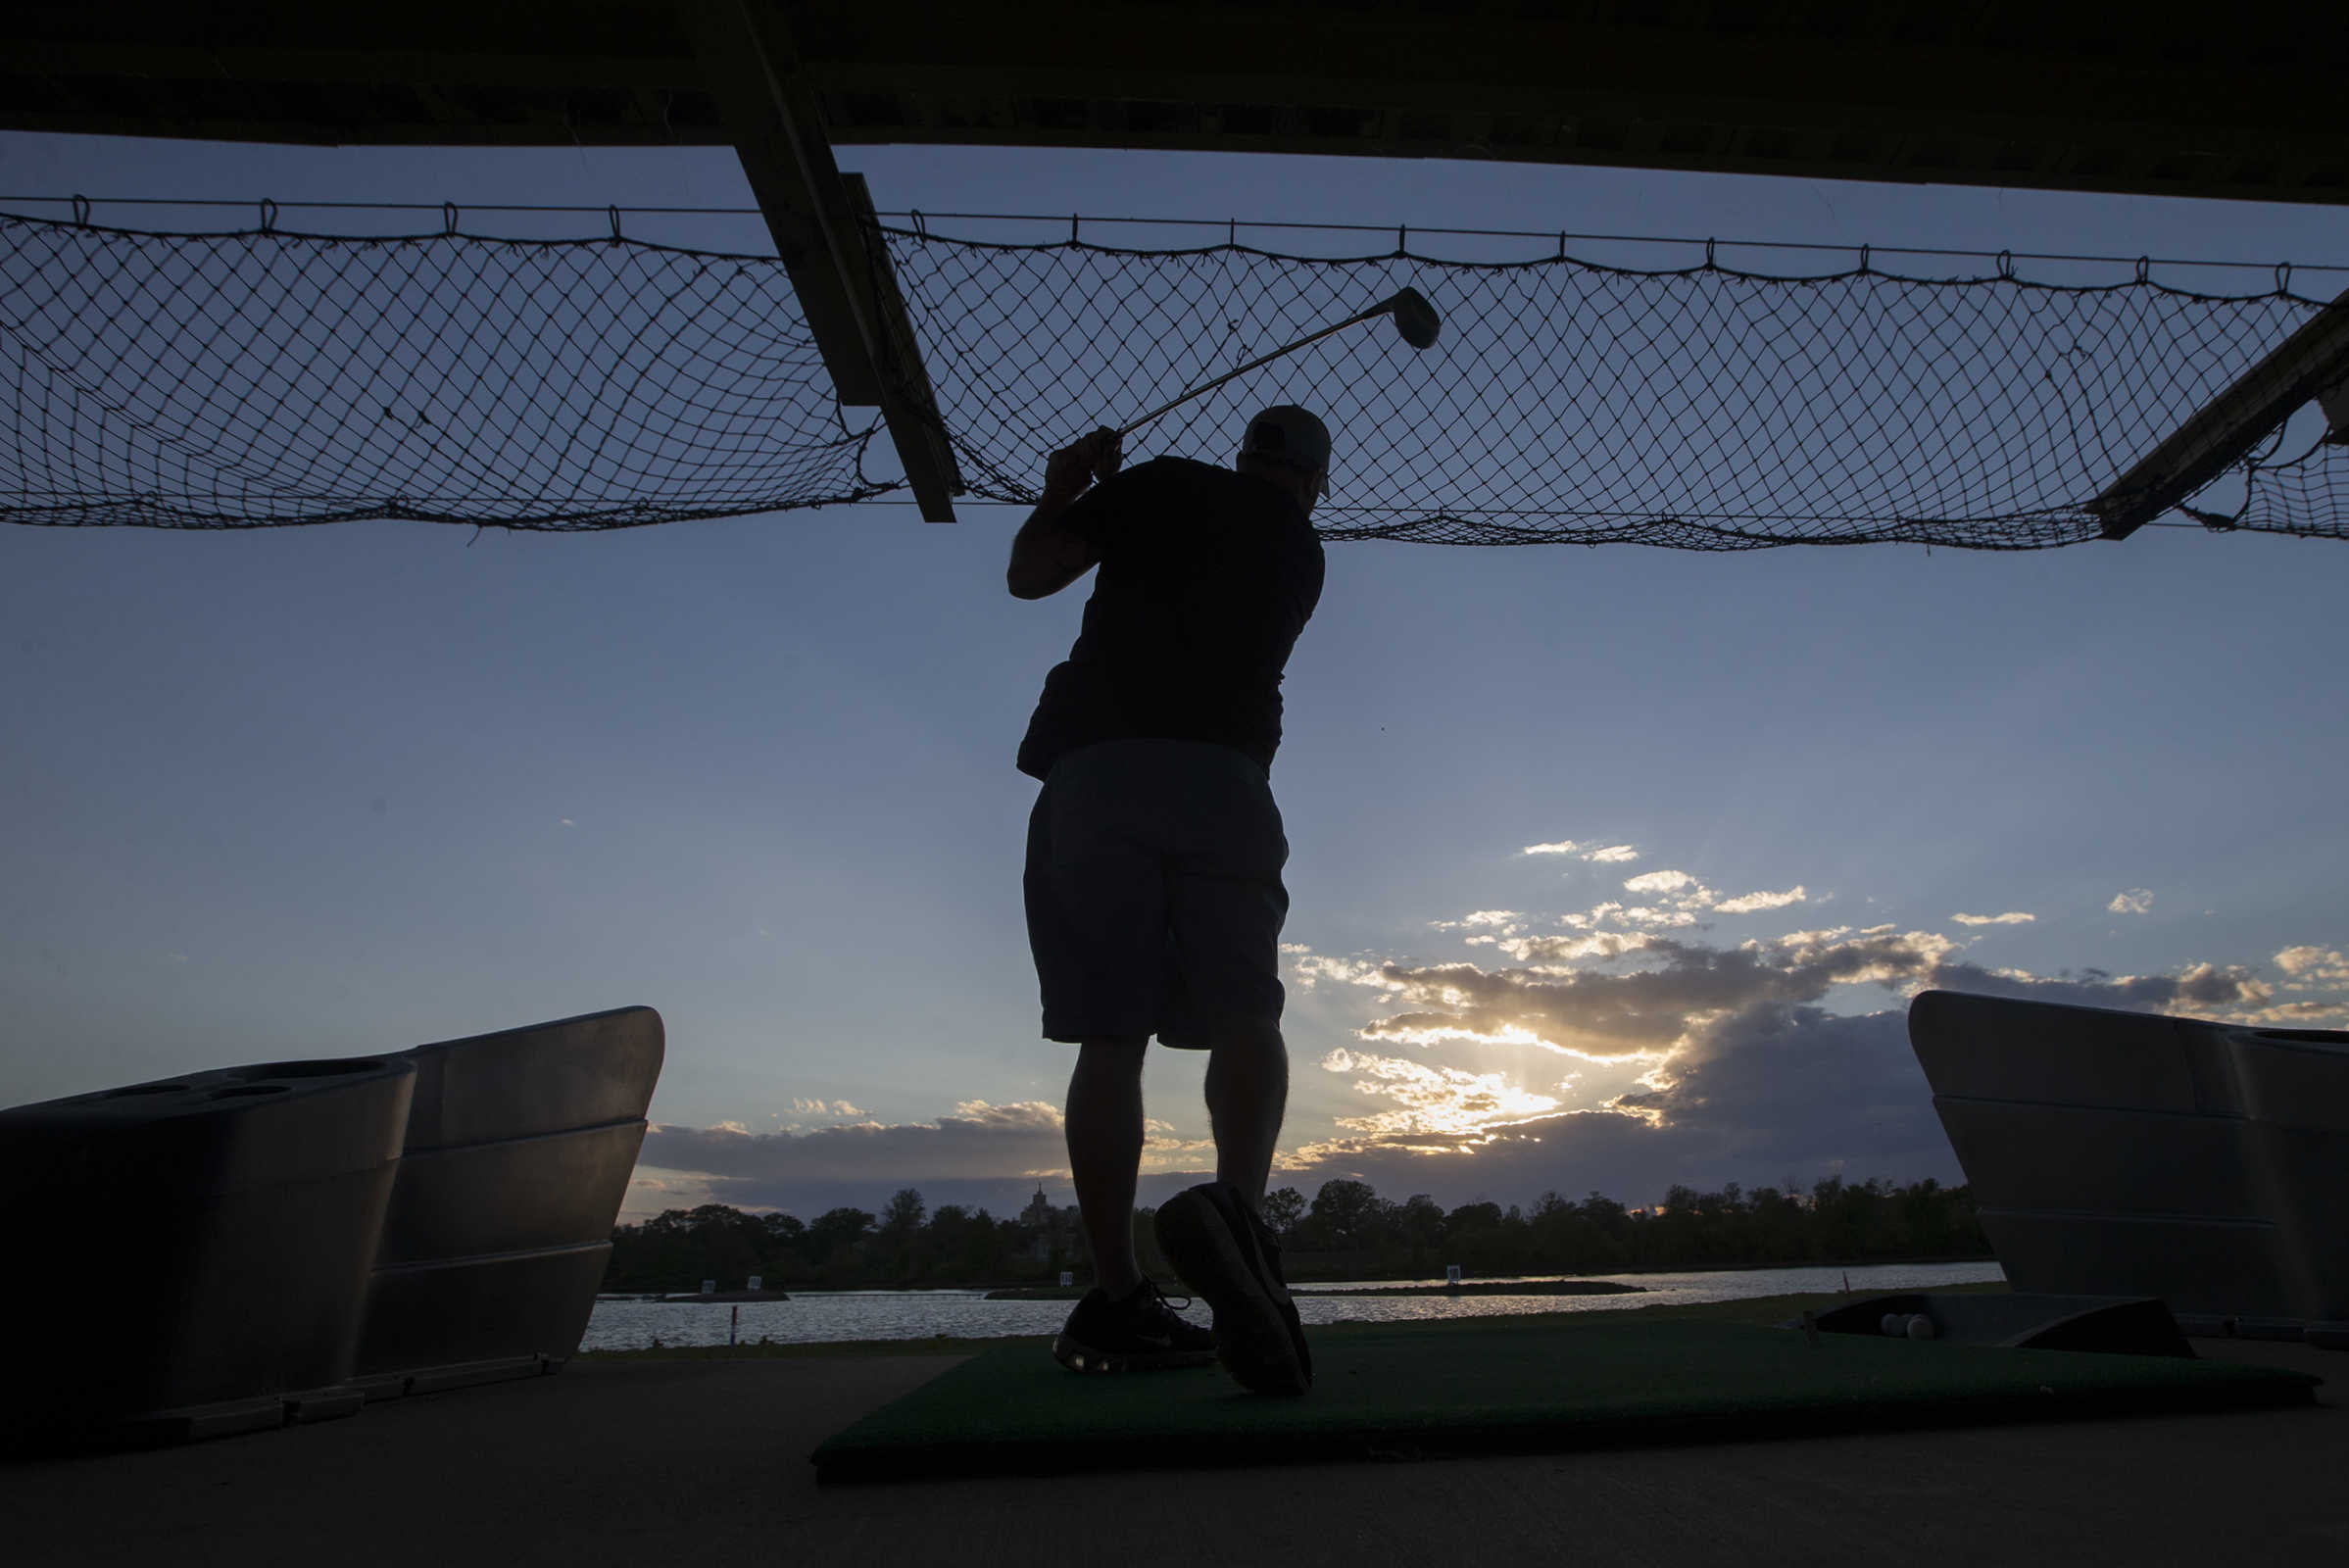 Recovery addicts are getting free golf lessons every Tuesday night as part of their road to recovery. Participant Ryan Hetrick seen here at the Camden County Golf Academy.